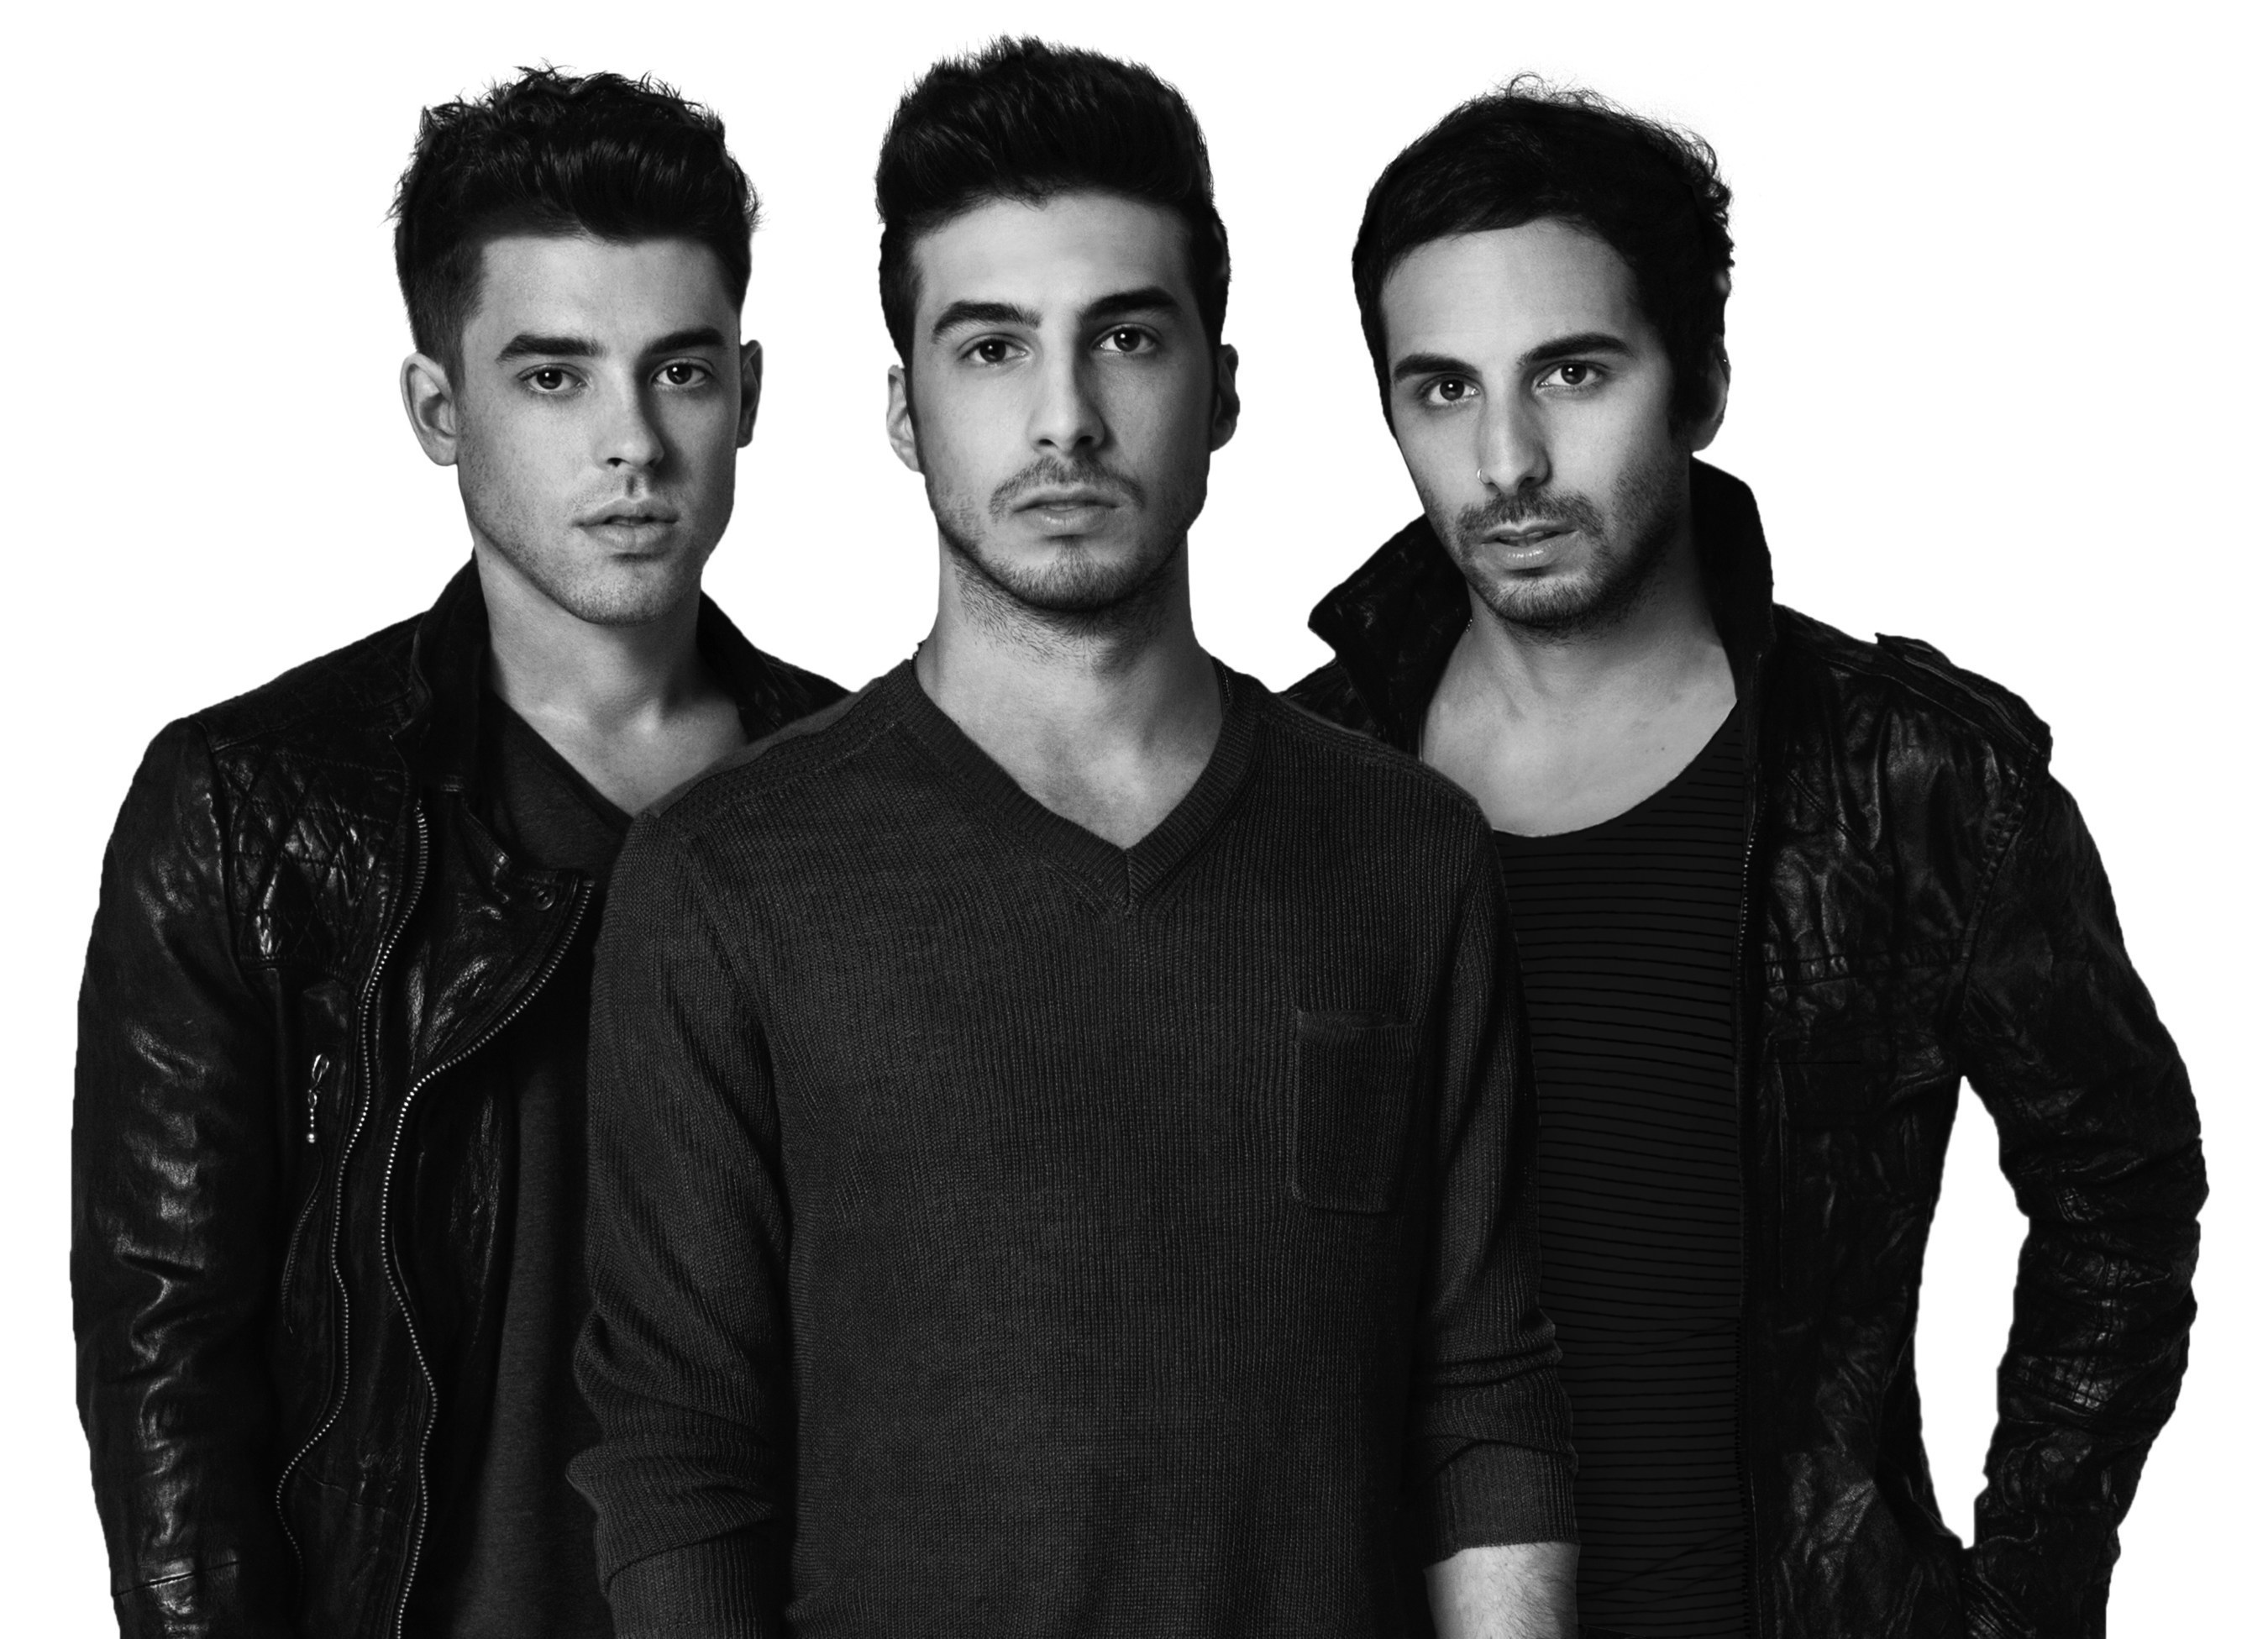 Electronic Dance Music group Cash Cash will headline the Budweiser Made In America Monument Series concert in San Francisco on August 15, 2015, along with rapper E-40 and indie rocker Day Wave.